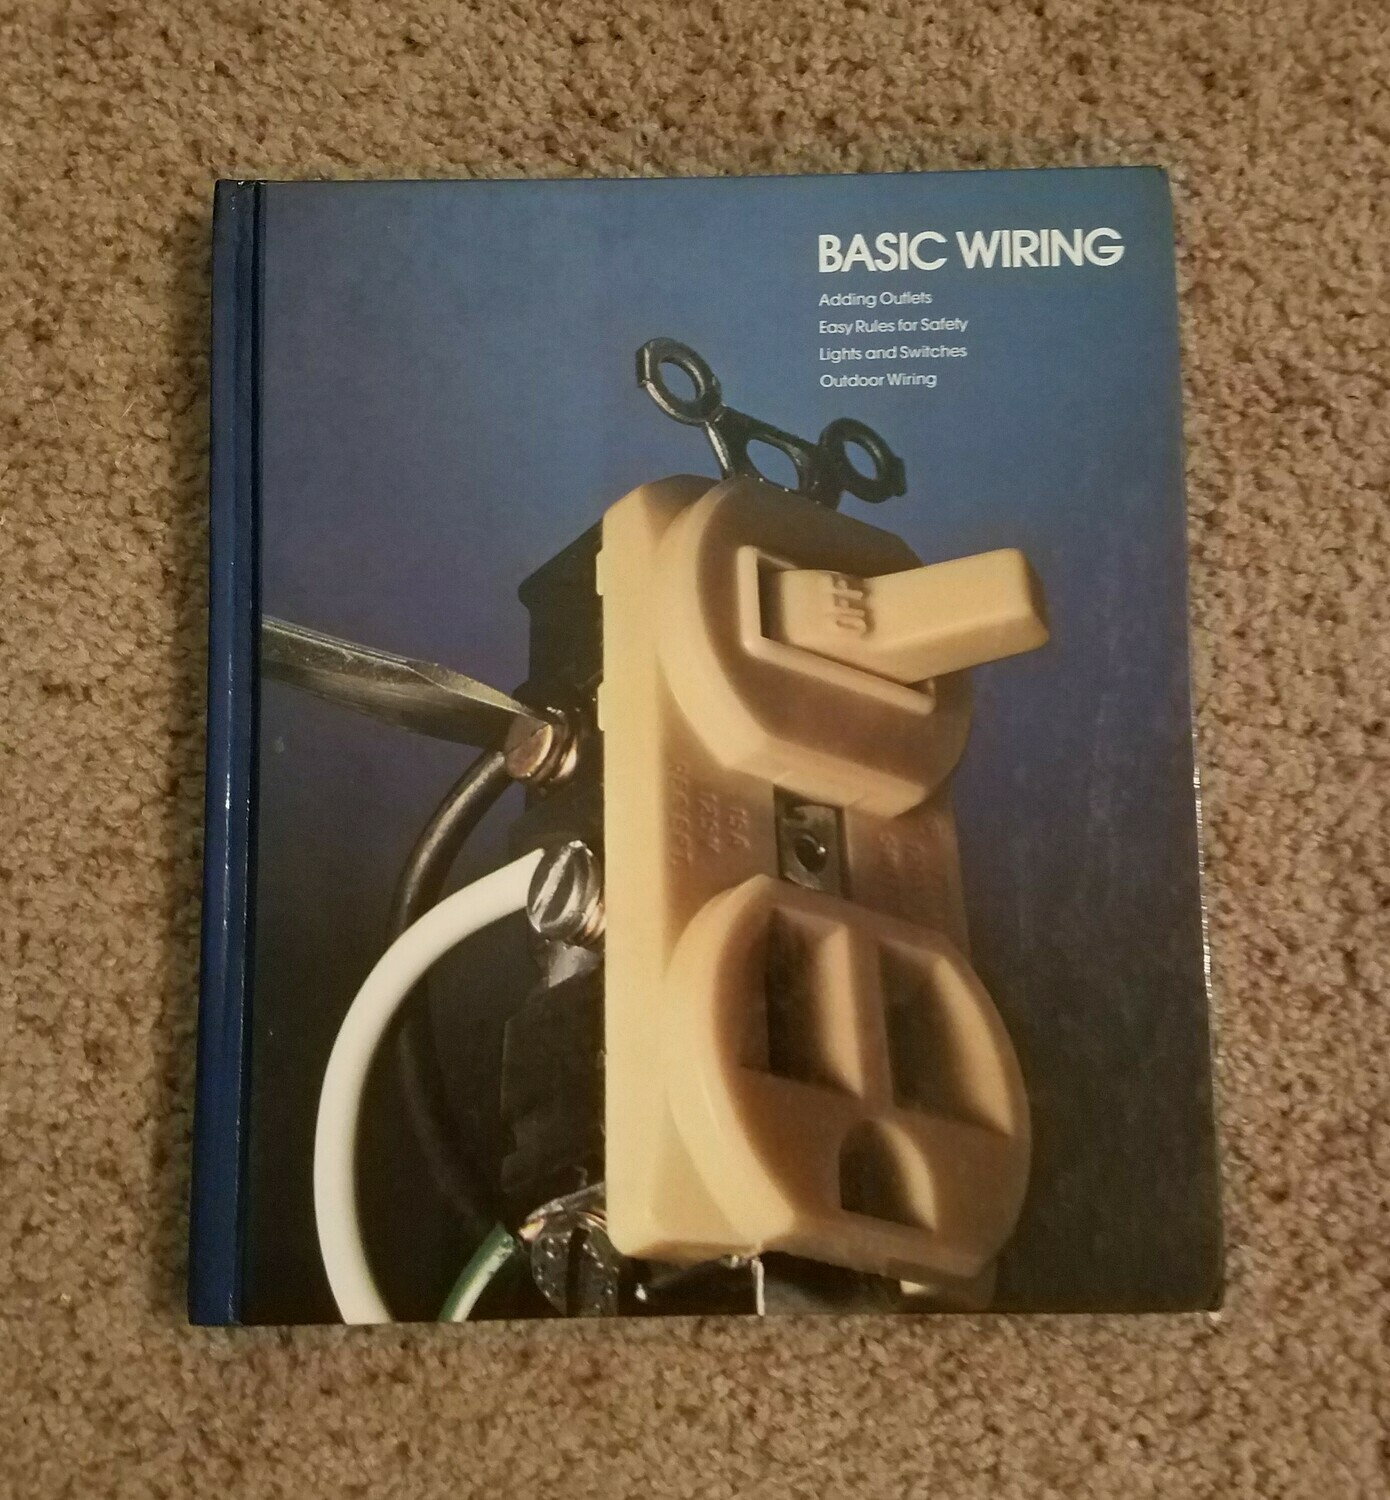 Basic Wiring by Editors of Time-Life Books